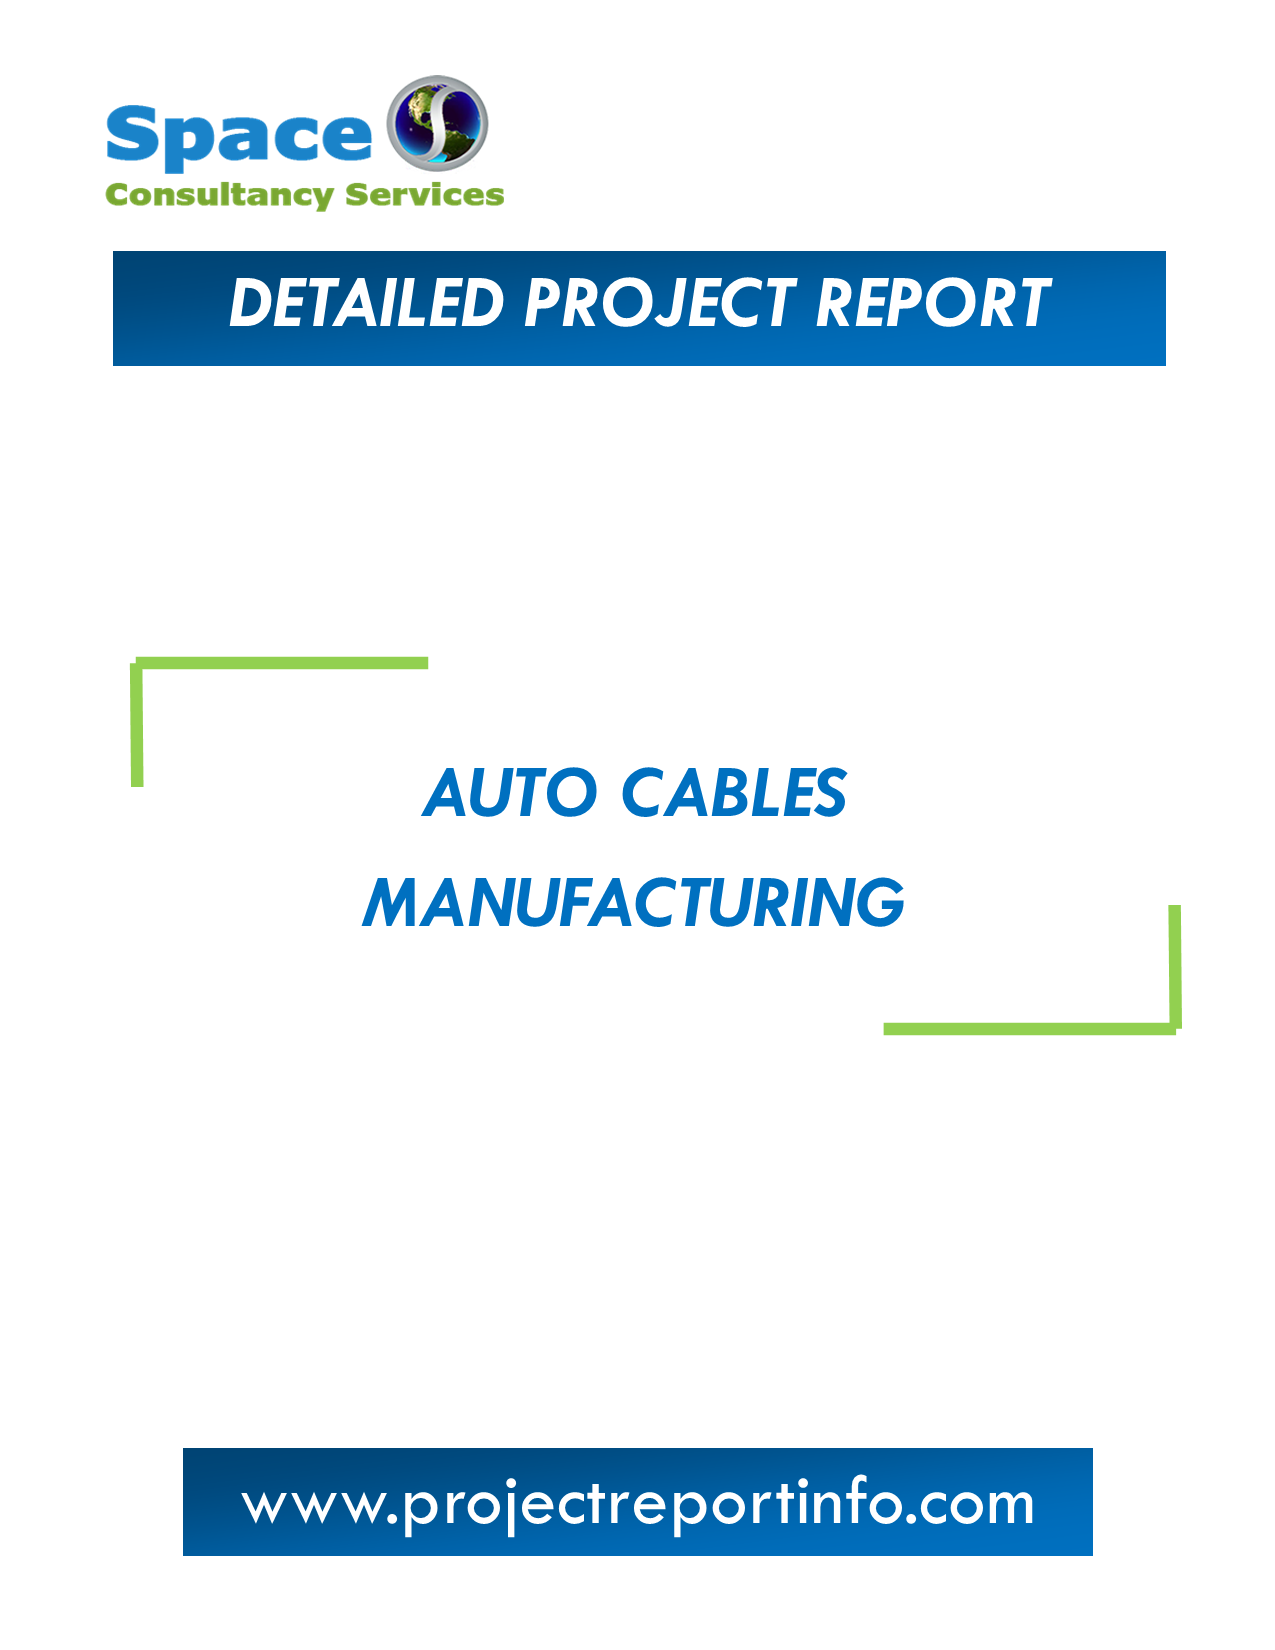 Auto Cables Manufacturing Project Report